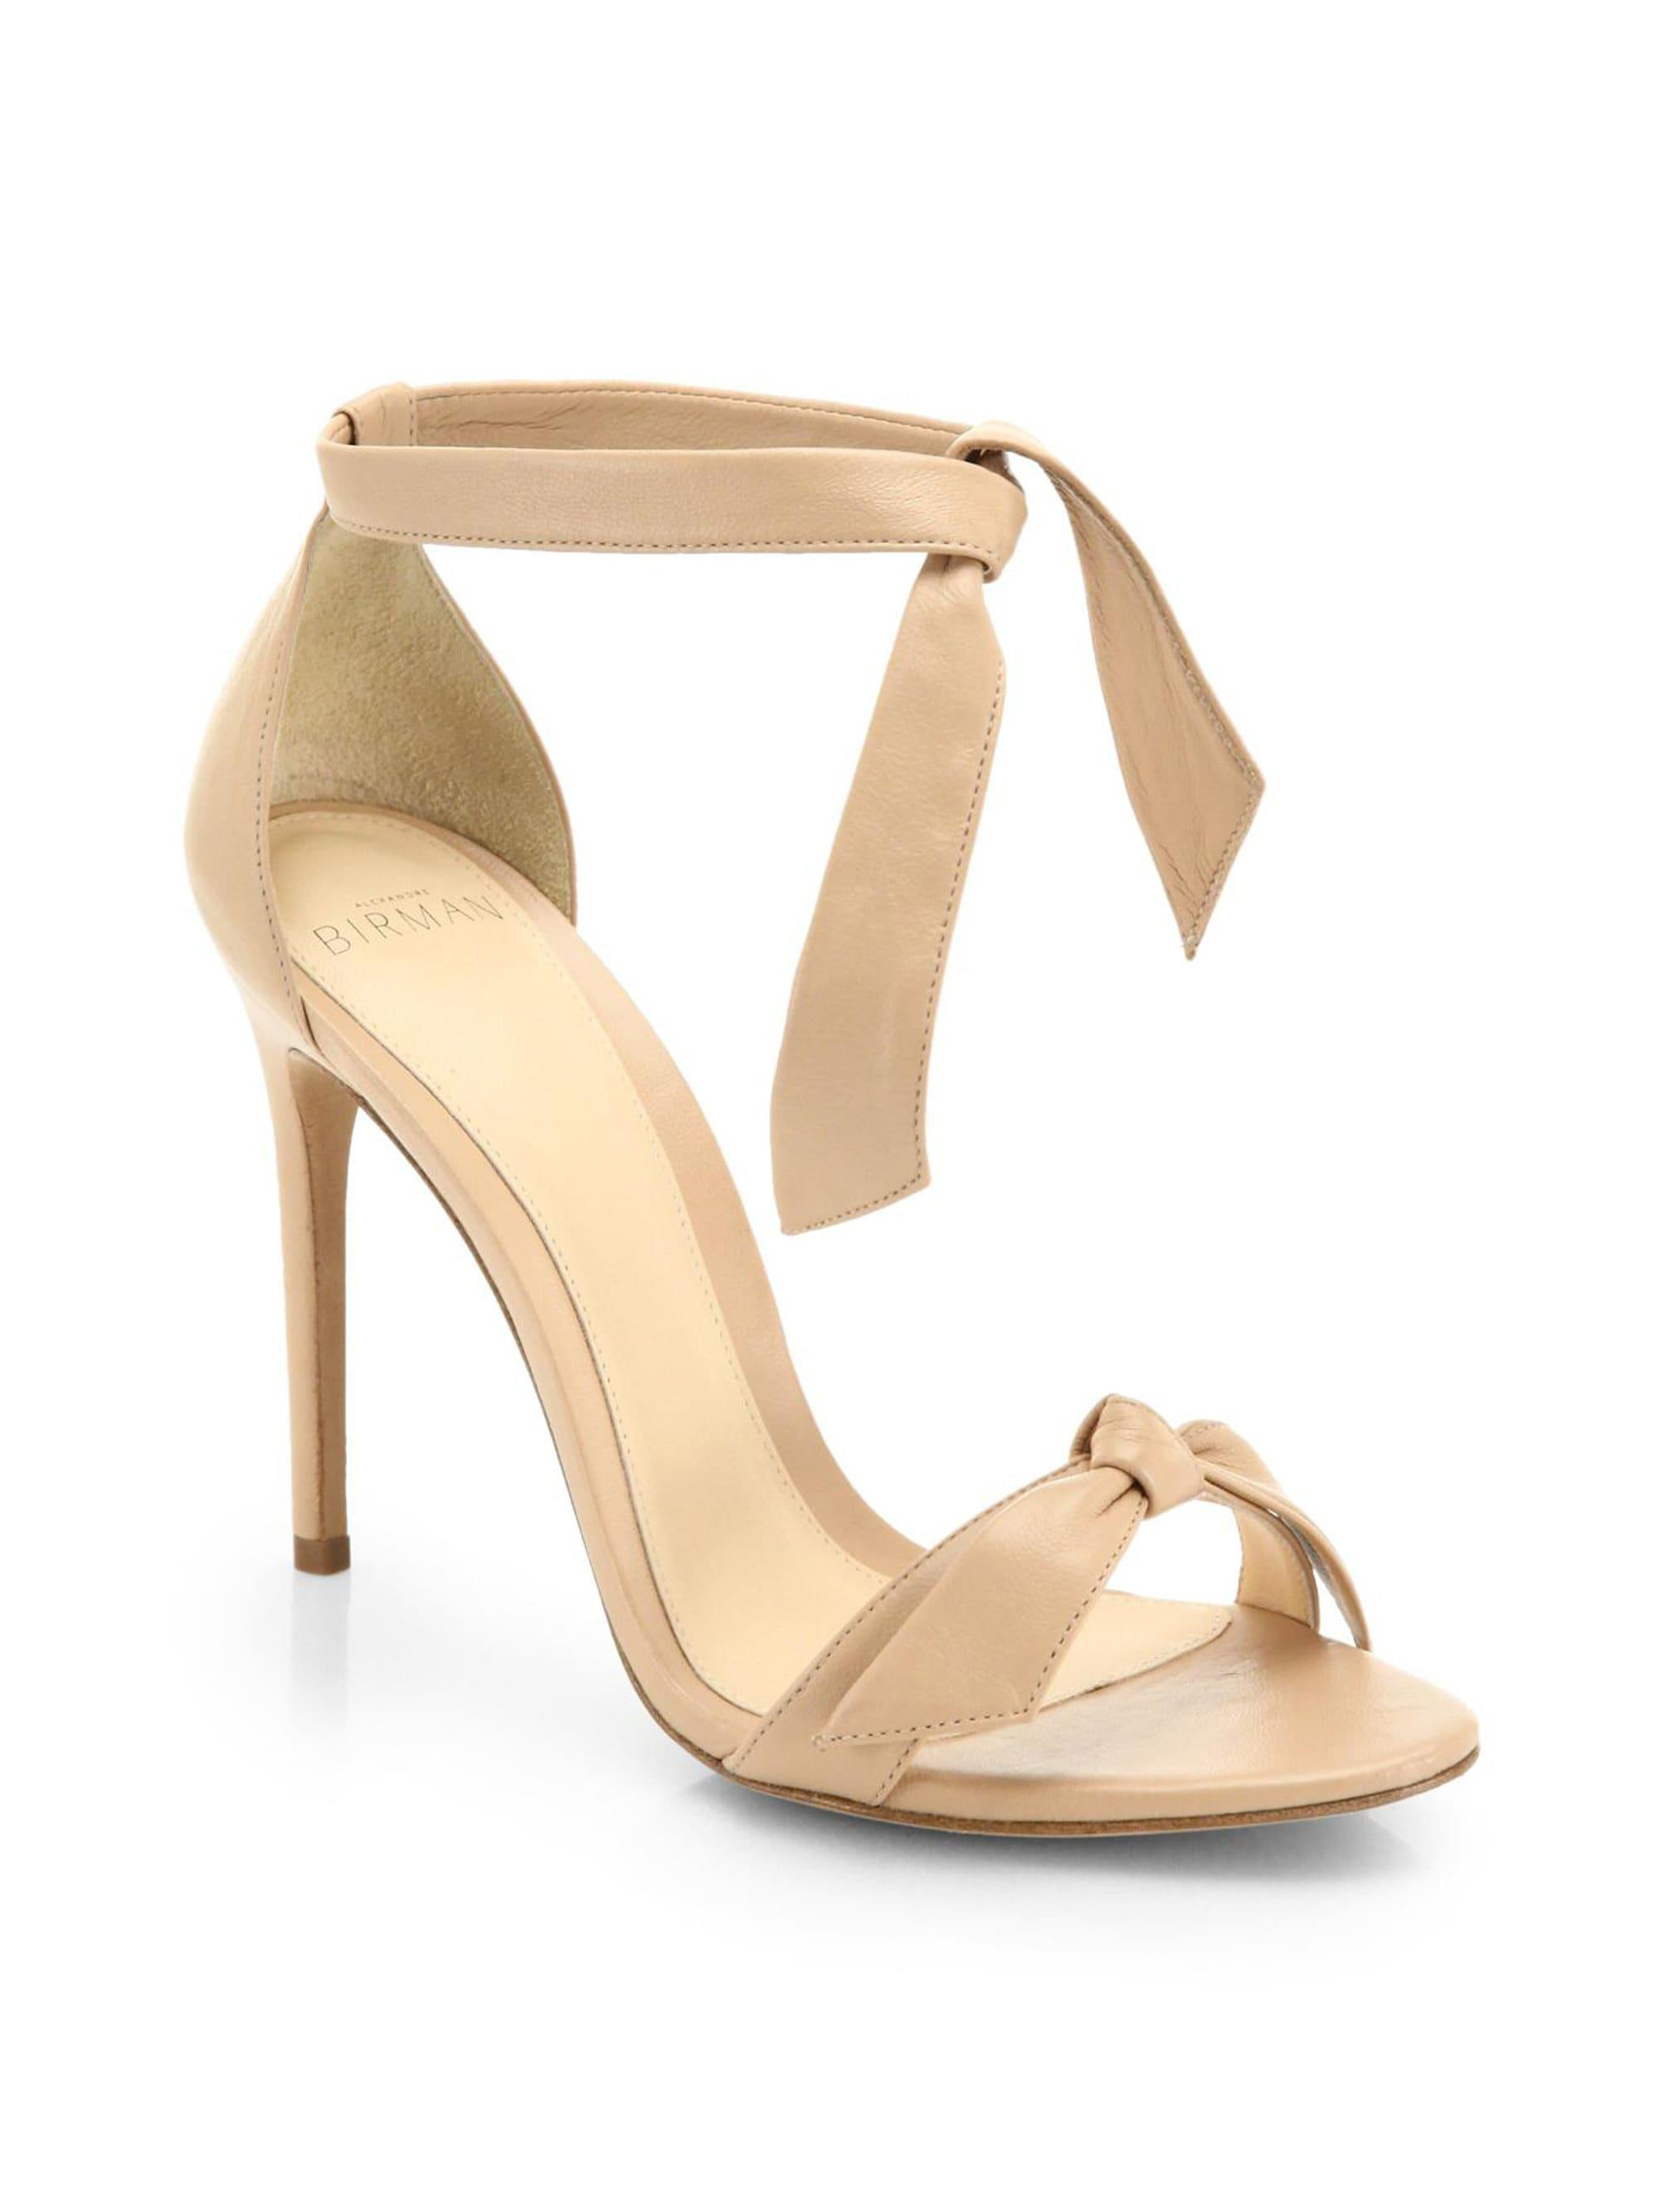 8aa380d80ea5 Lyst - Alexandre Birman Clarita Leather Ankle-tie Sandals in Natural